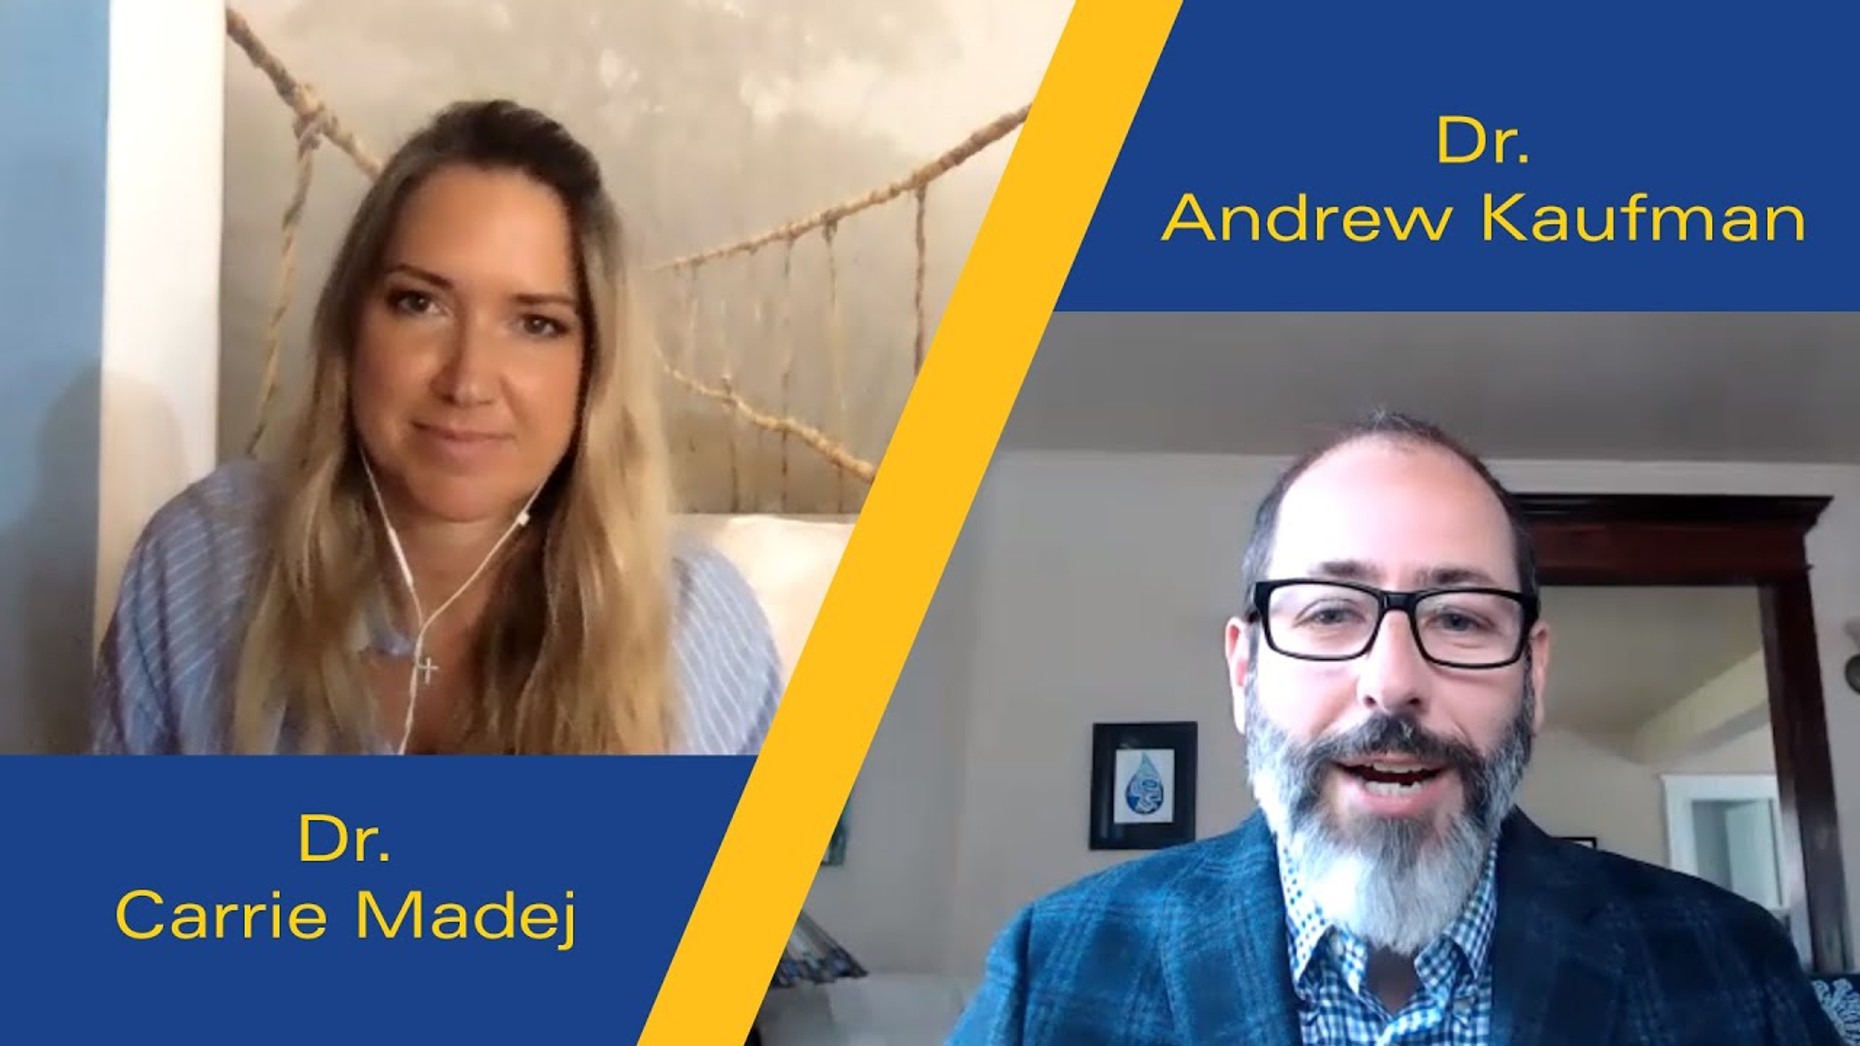 Dr. Carrie Madej with Dr. Andrew Kaufman on vx , hydrogel, and secret government programs